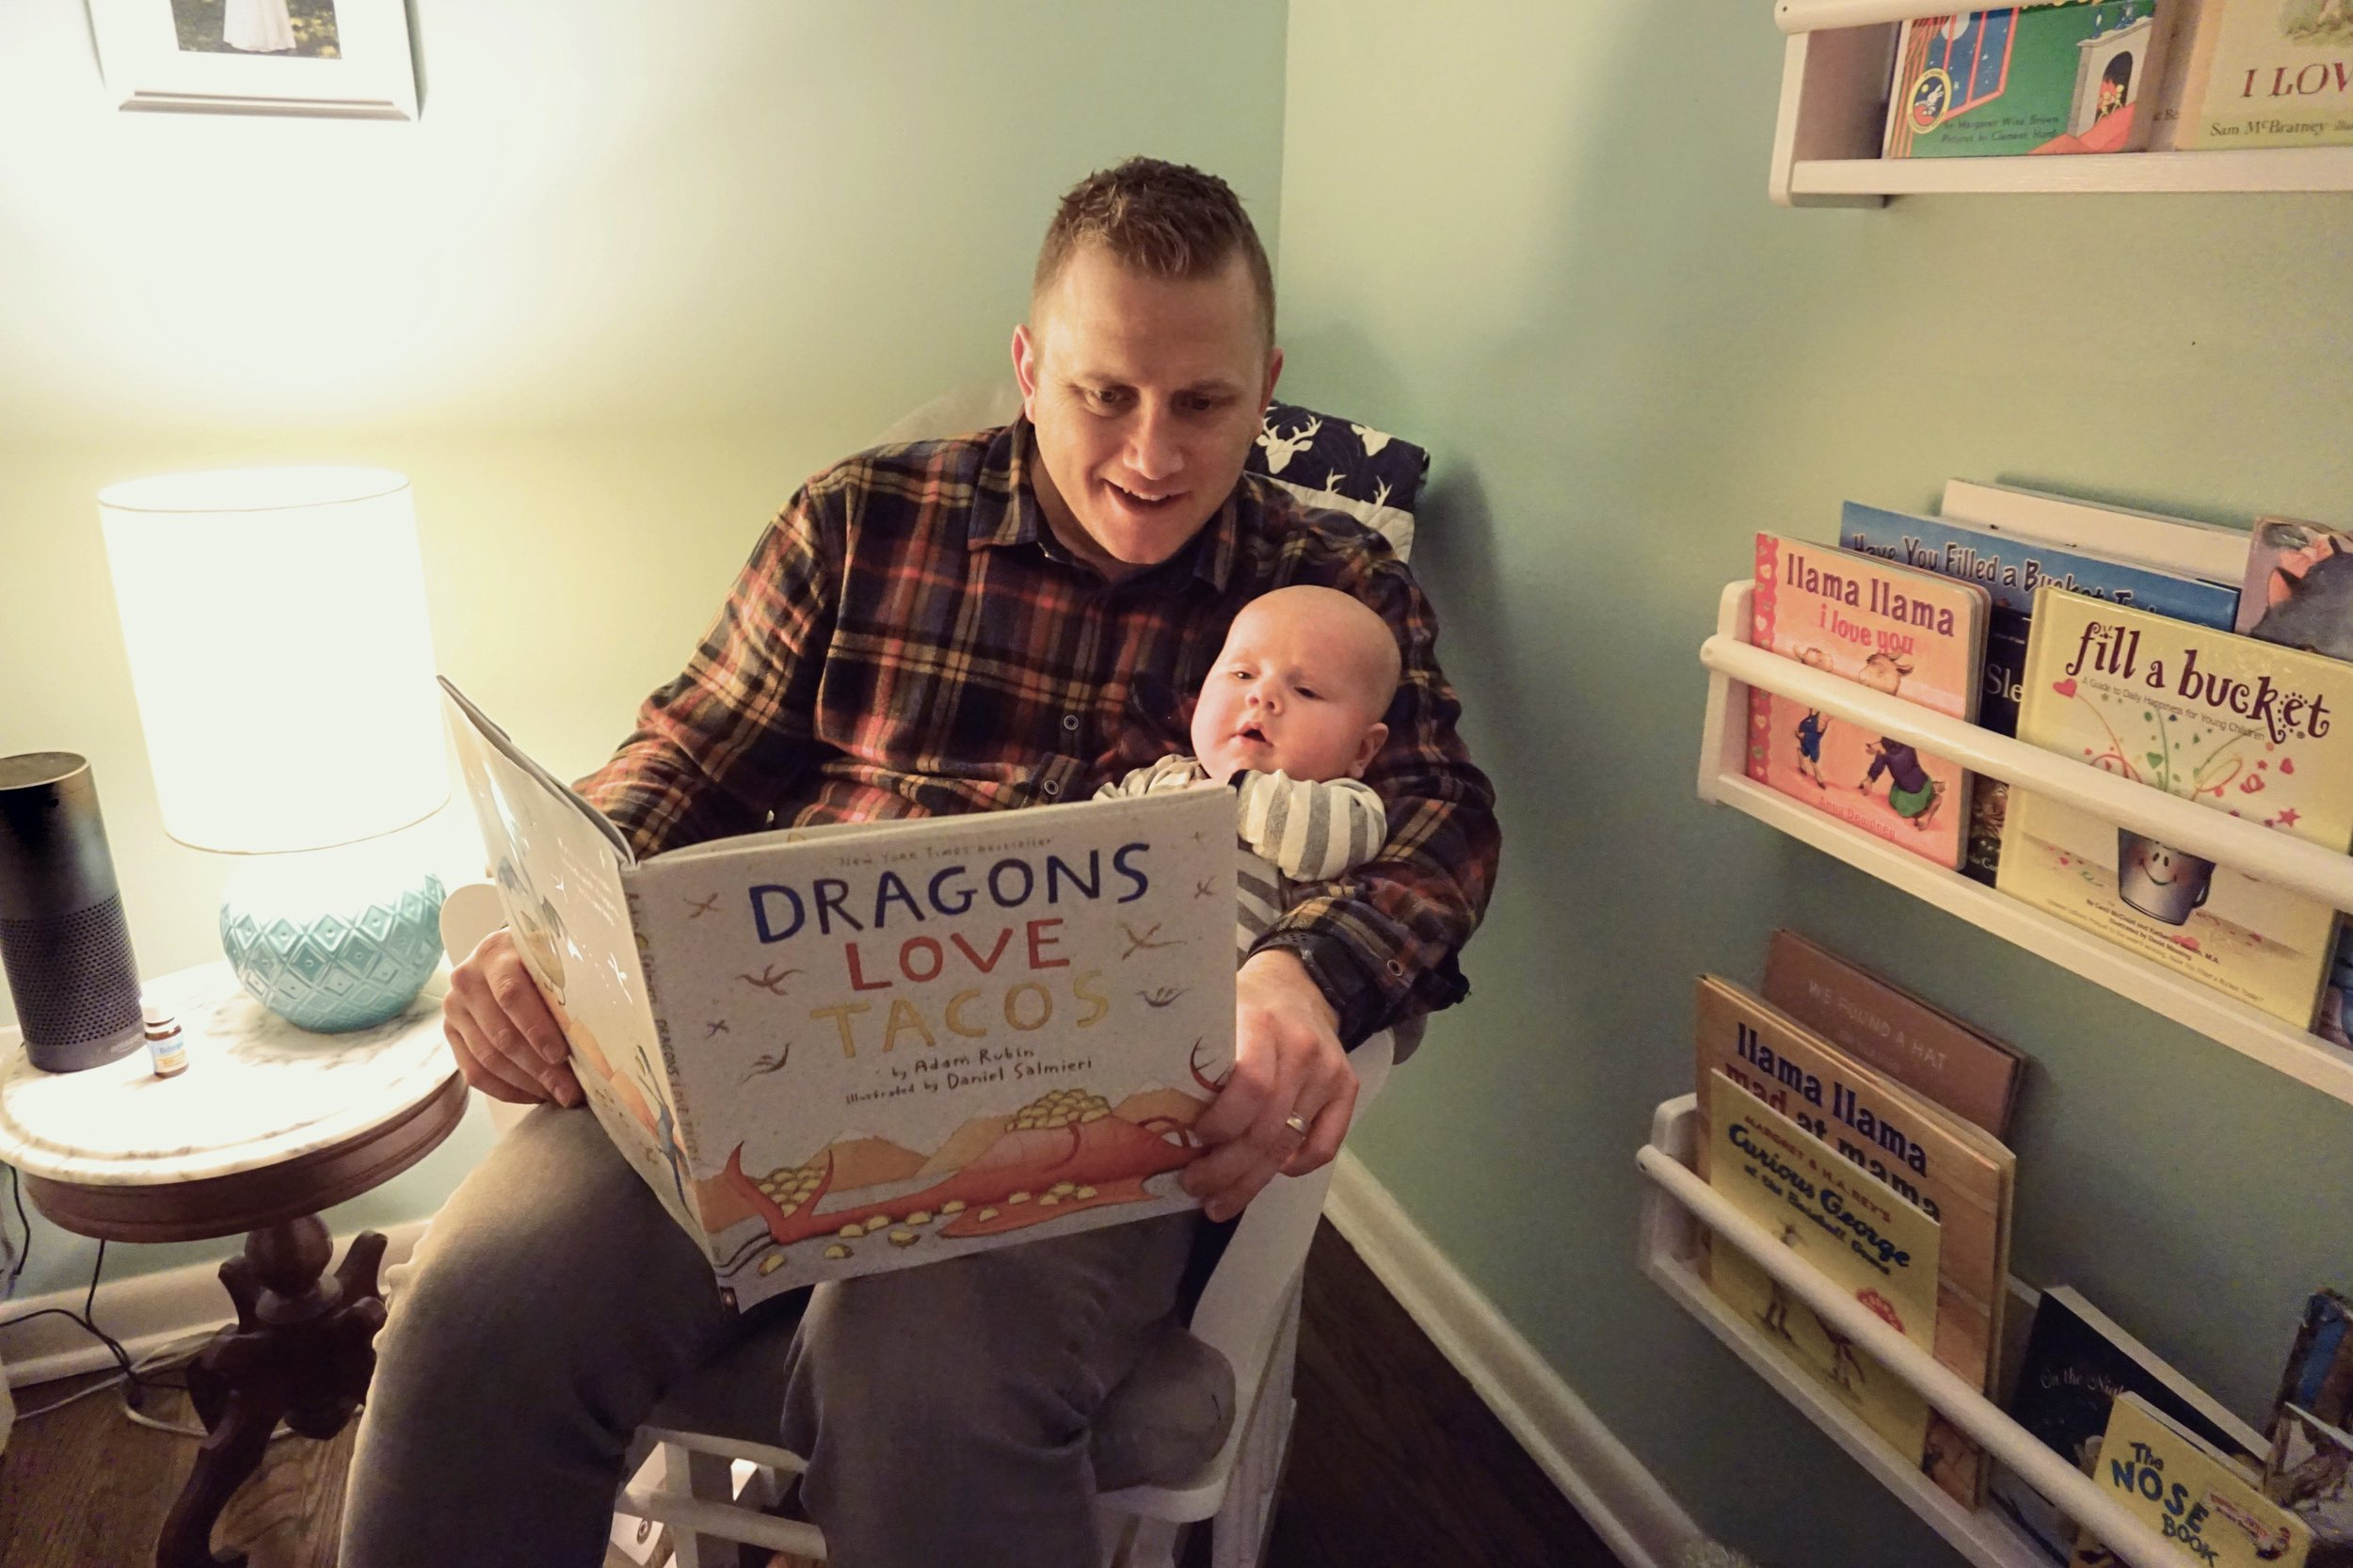 Dad's the best at bedtime stories